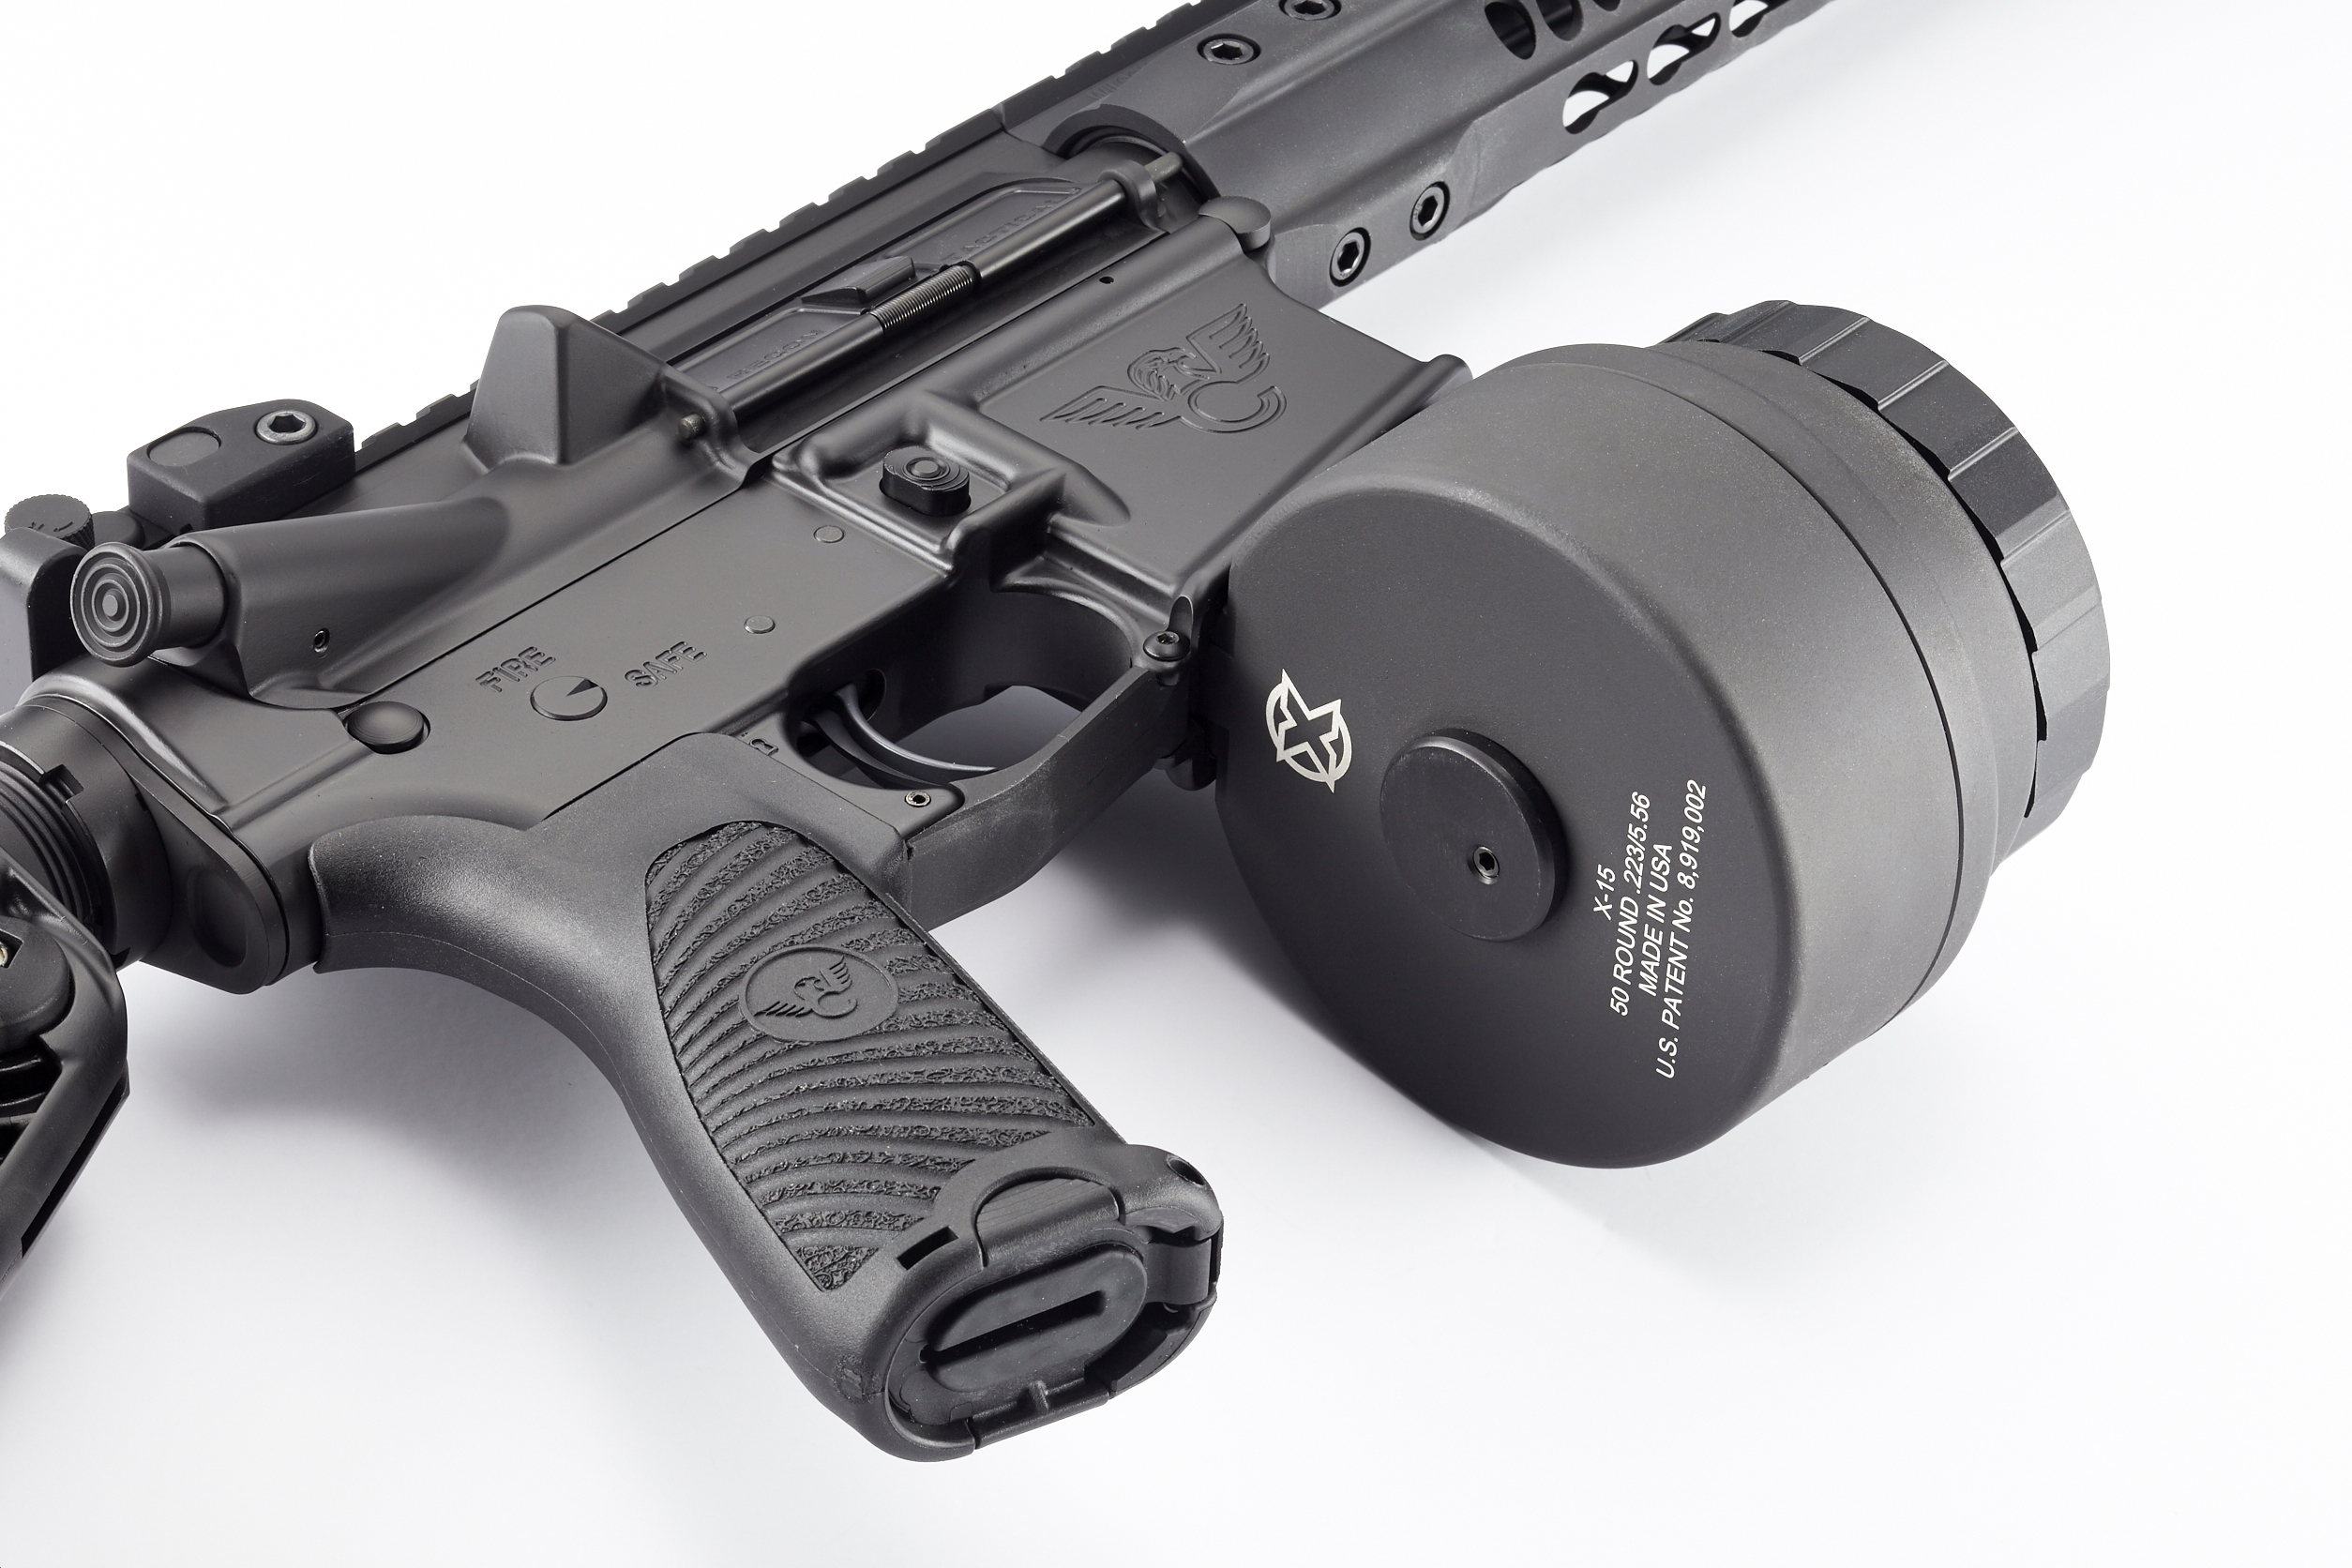 XProducts, X-15 50 Round Drum Magazine for AR15 & M16, Black-http ...